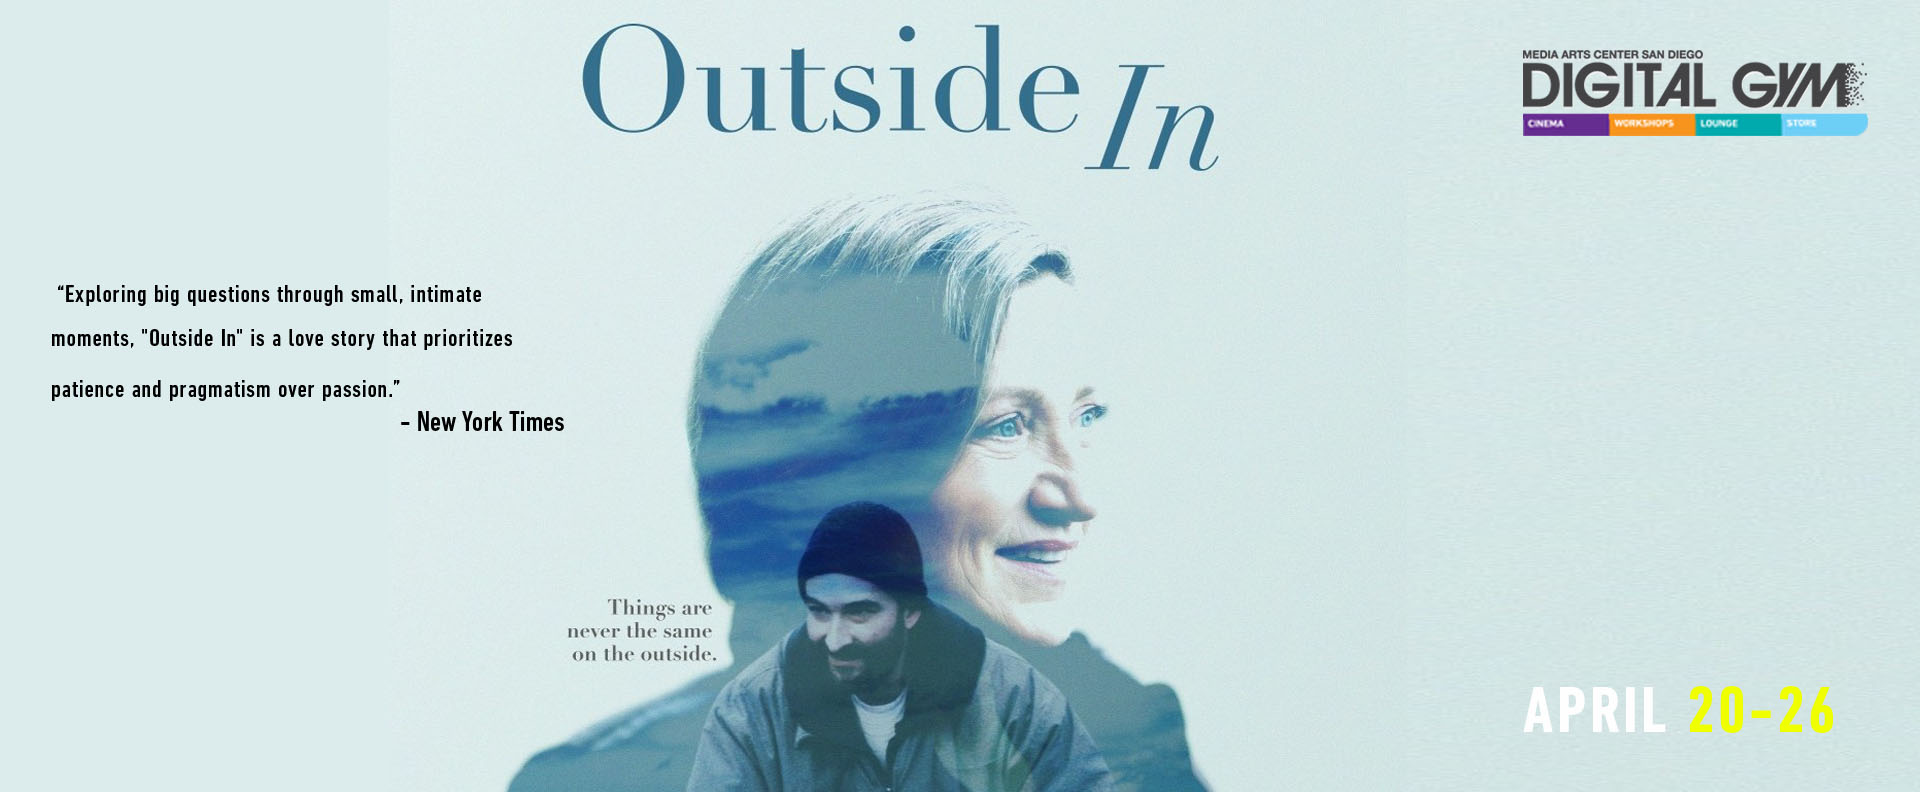 Outside In (April 20 – April 26) – starring award winning actress Edie Falco